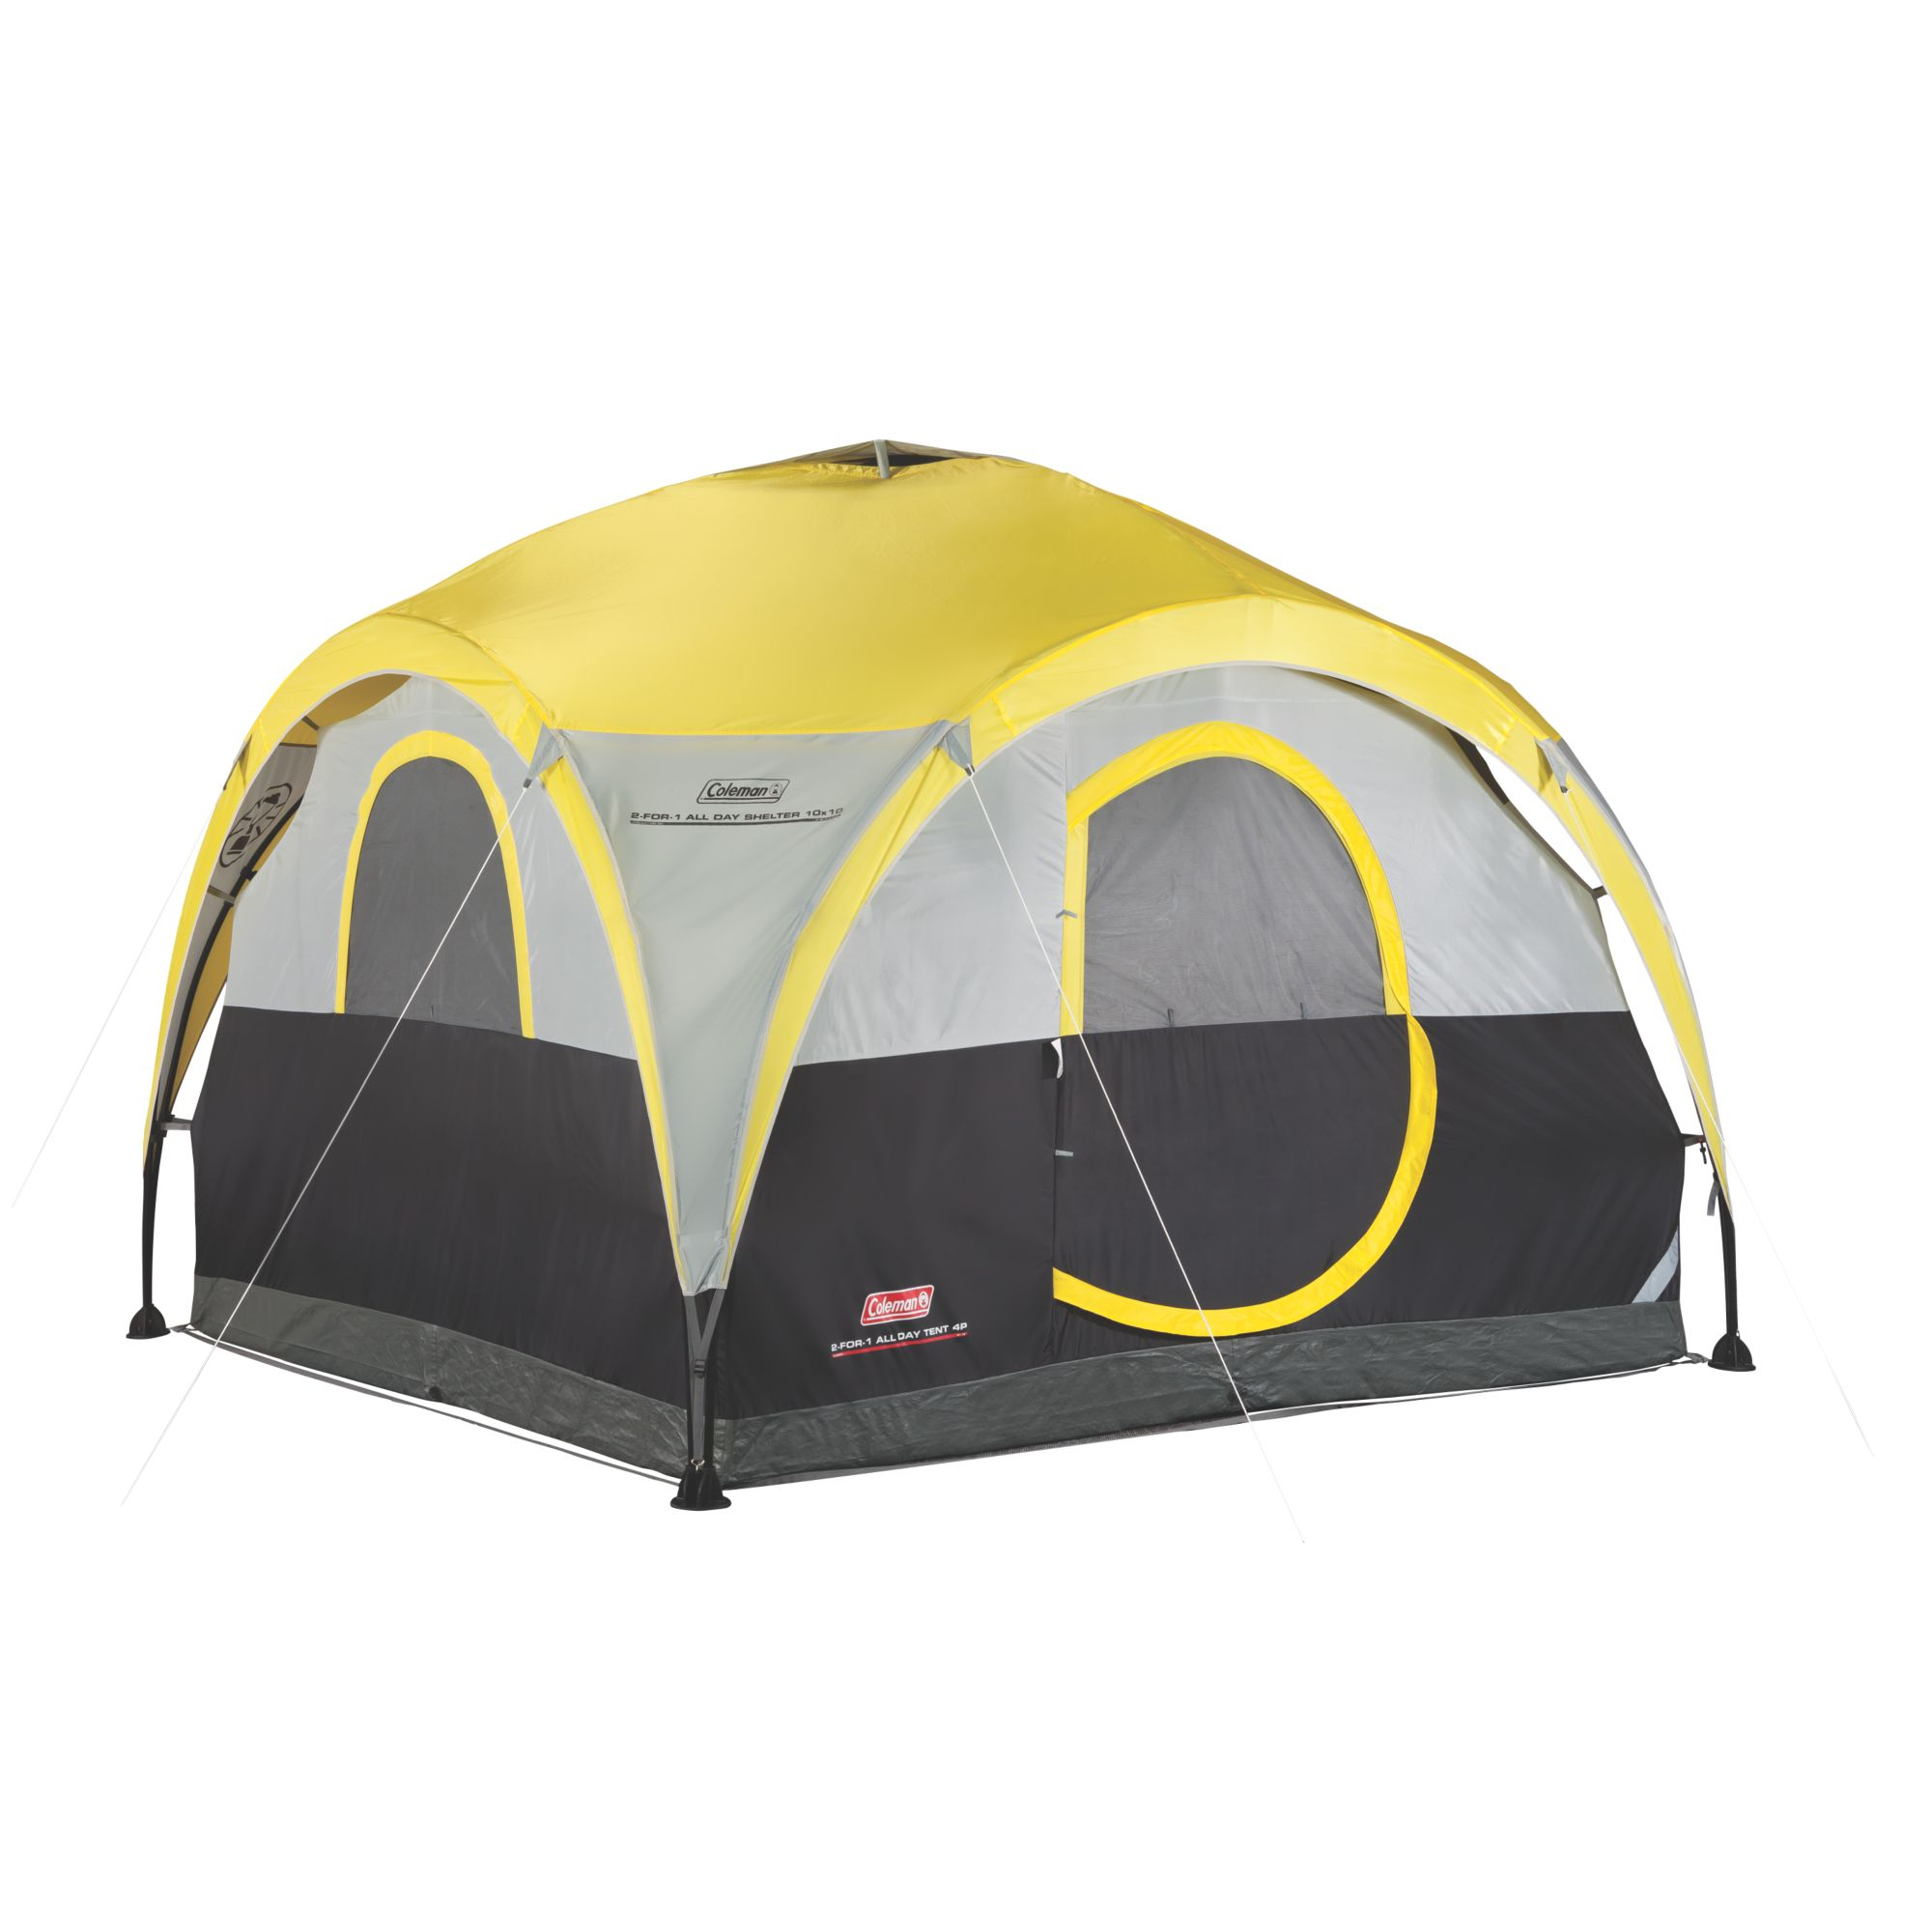 2 For 1 All Day 4 Person Shelter   Tent. 4 Person Dome Tents   Coleman Tents   Coleman